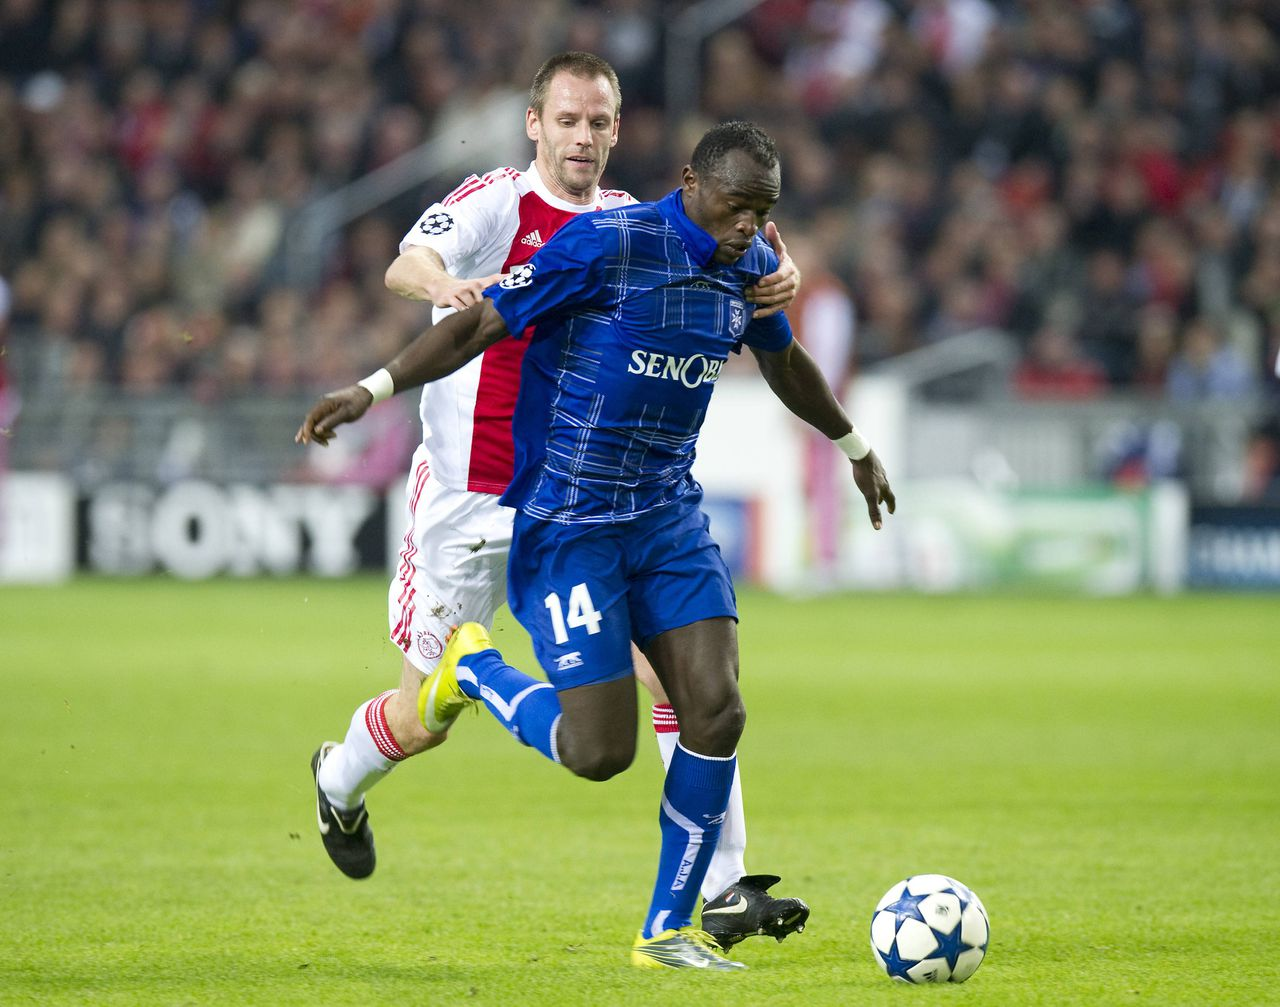 Ajax Amsterdam's Andre Ooijer (L) challenges AJ Auxerre's Dennis Oliech during their Champions League Group G soccer match at the Amsterdam Arena October 19, 2010. Ooijer got a red card for this action. REUTERS/Paul Vreeker/United Photos (NETHERLANDS - Tags: SPORT SOCCER)